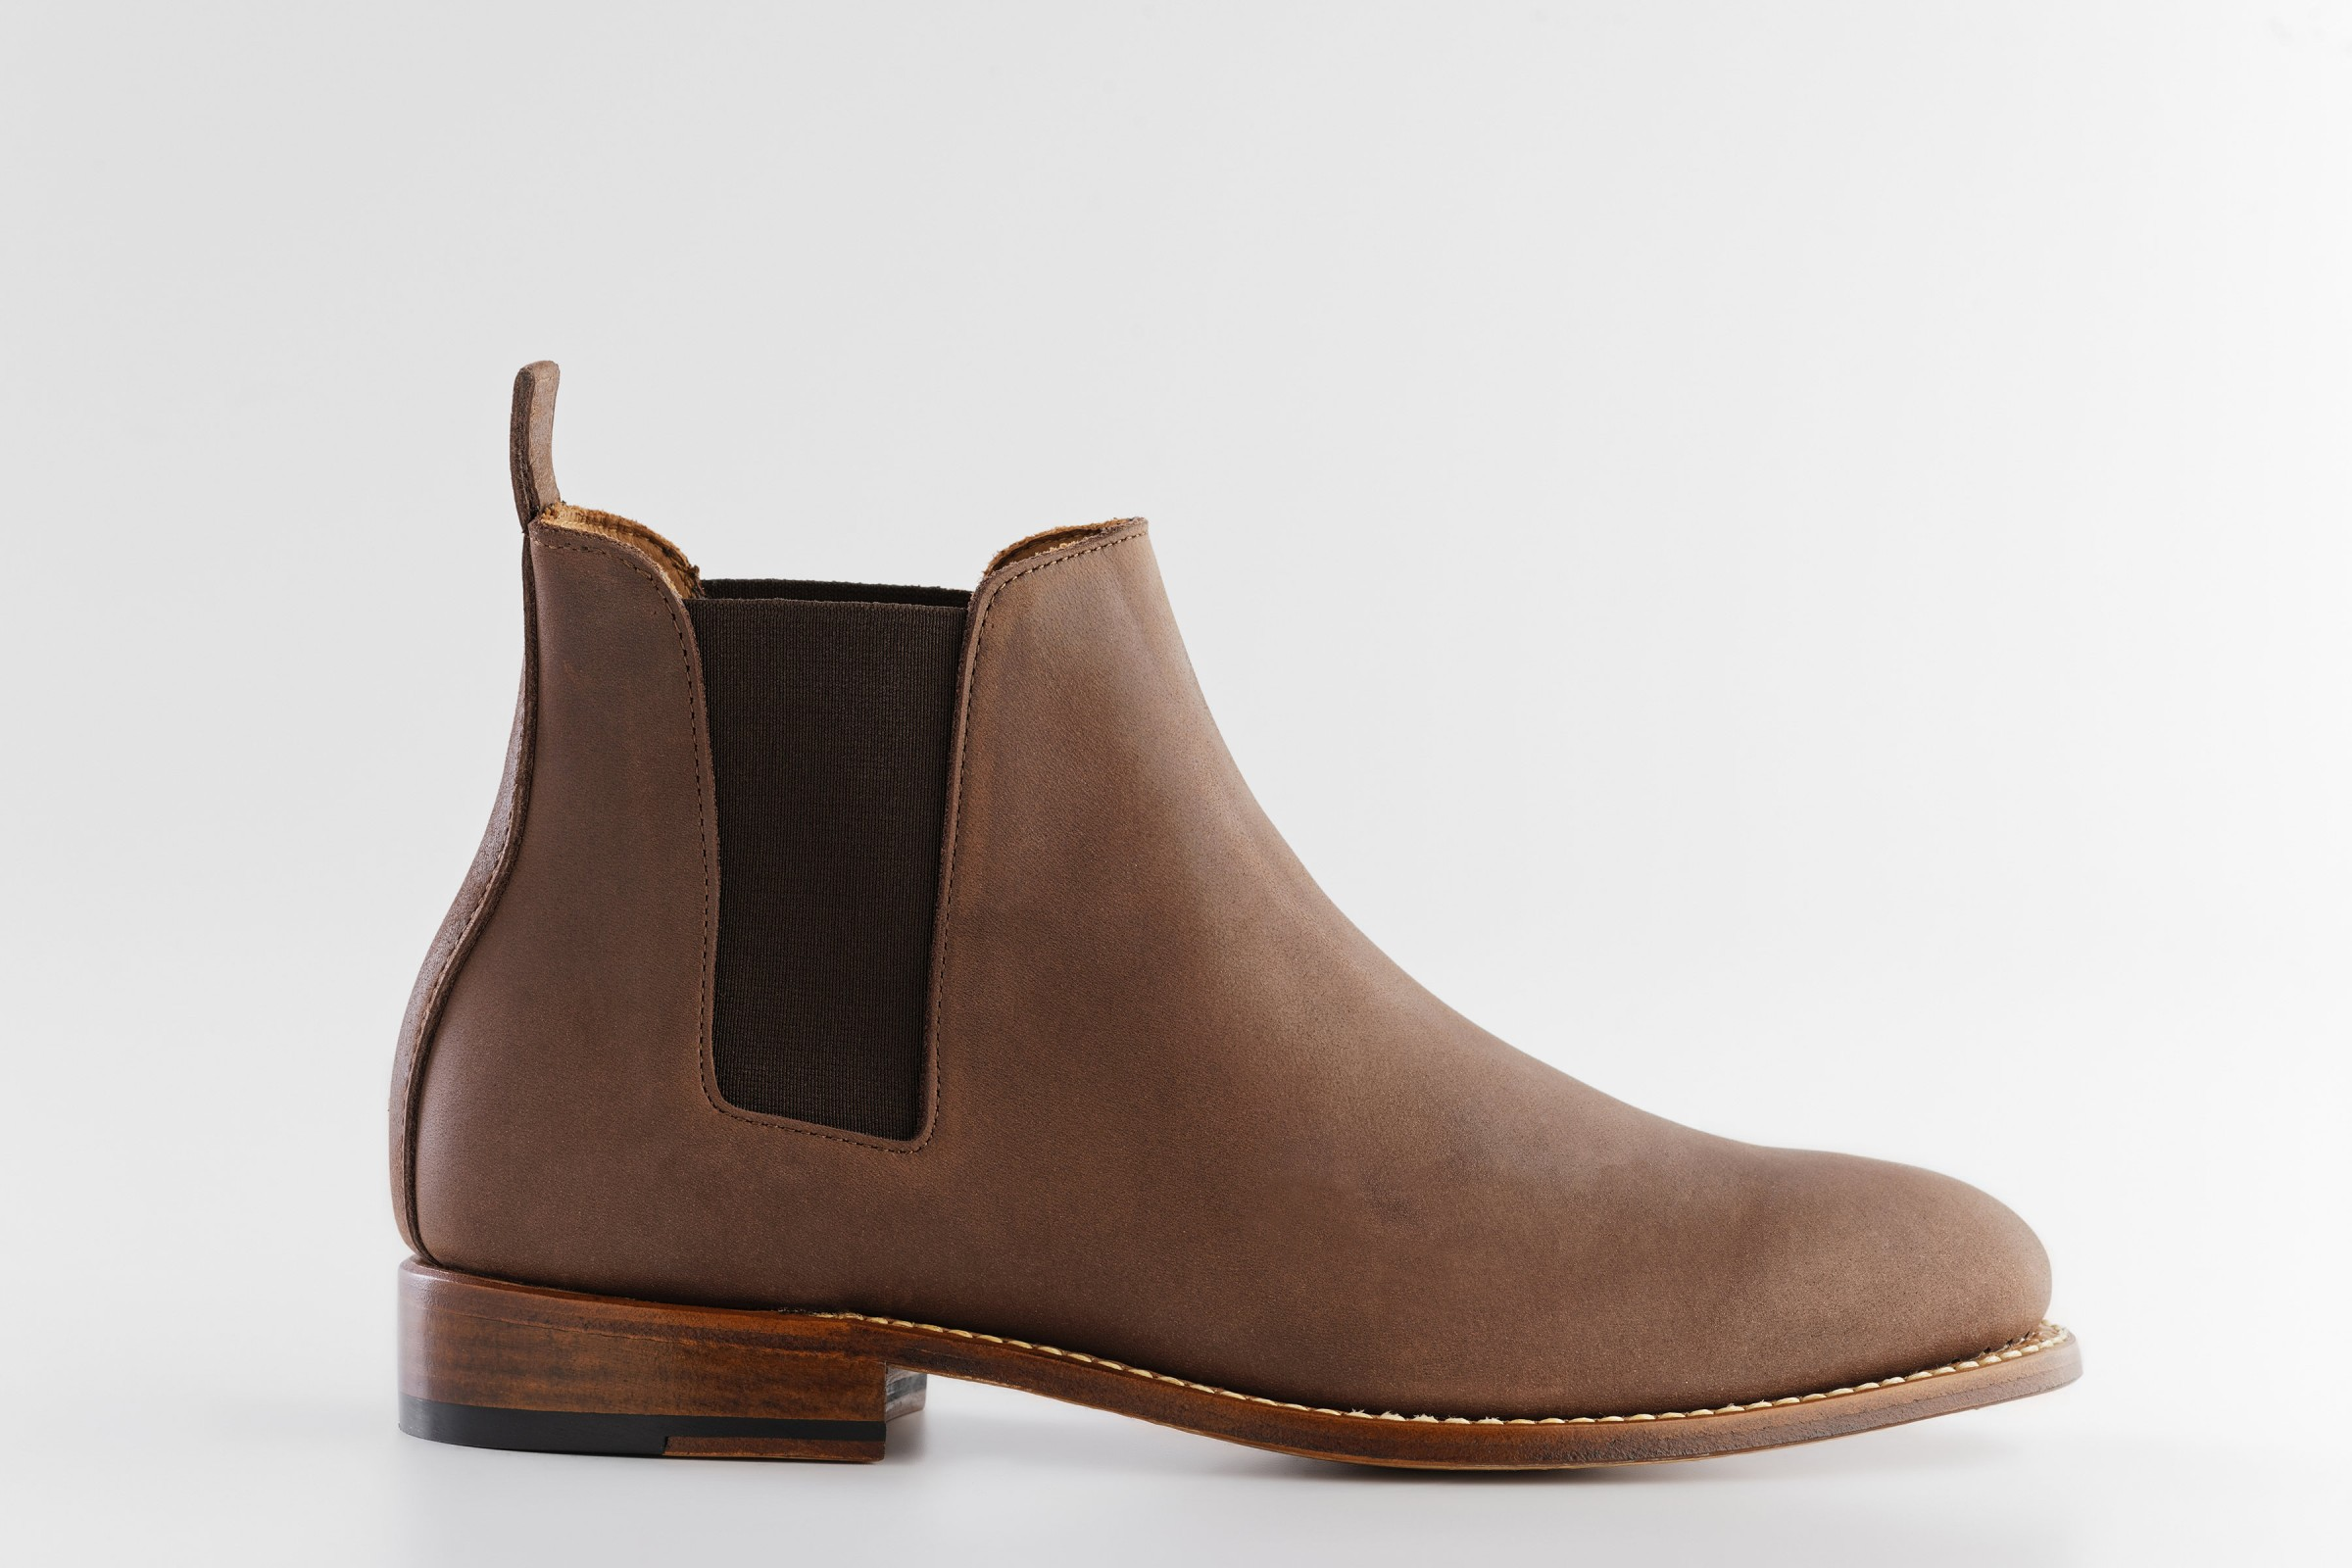 THE CHELSEA BOOT #68